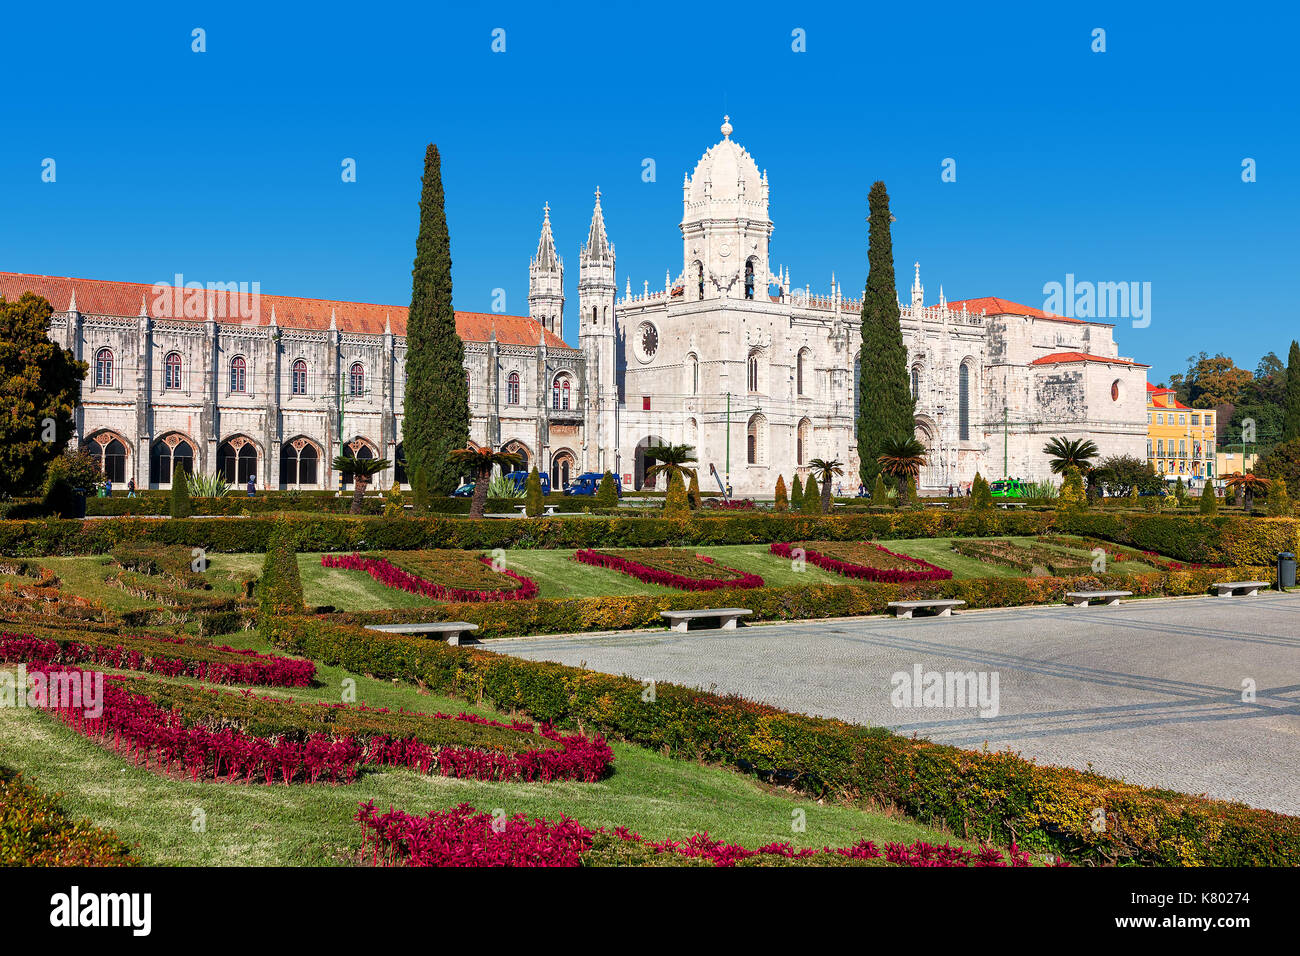 View of urban park with flowers and Jeronimos (aka Hieronymites) Monastery under blue sky in Lisbon, Portugal. - Stock Image